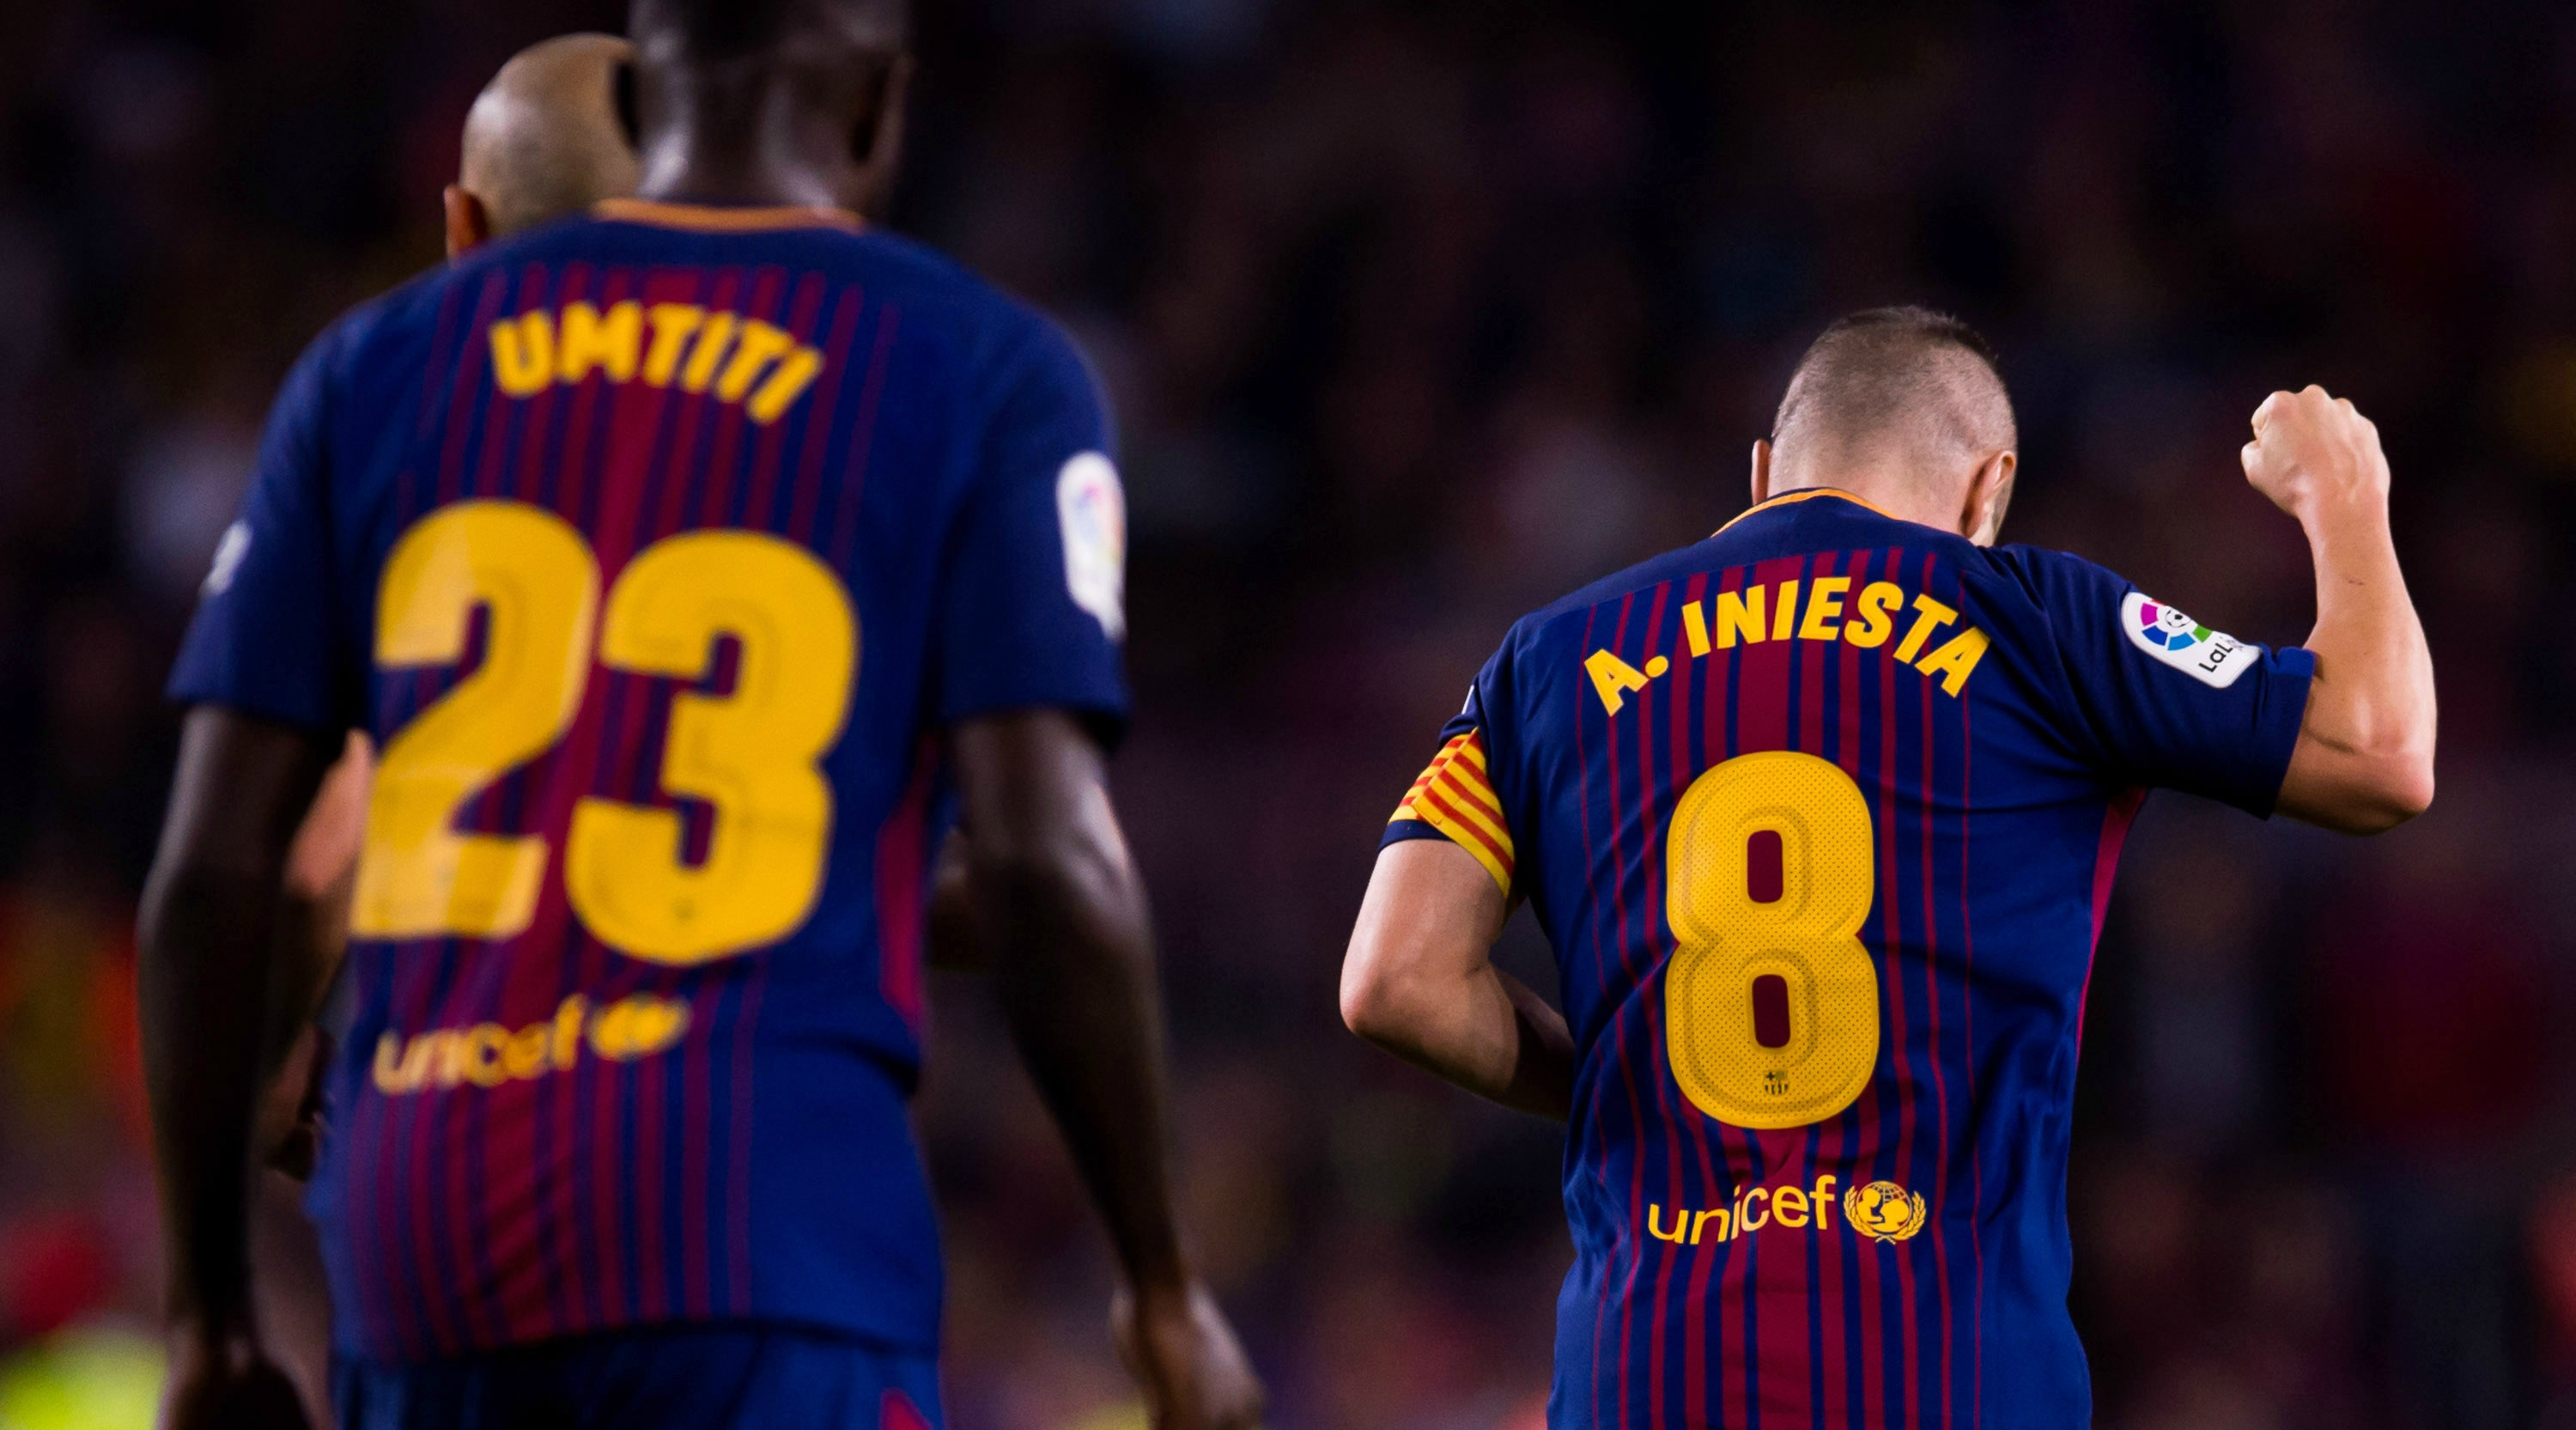 BARCELONA, SPAIN - OCTOBER 21: Andres Iniesta of FC Barcelona celebrates after scoring his team's second goal during the La Liga match between Barcelona and Malaga at Camp Nou on October 21, 2017 in Barcelona, Spain. (Photo by Alex Capaeros/Getty Images)